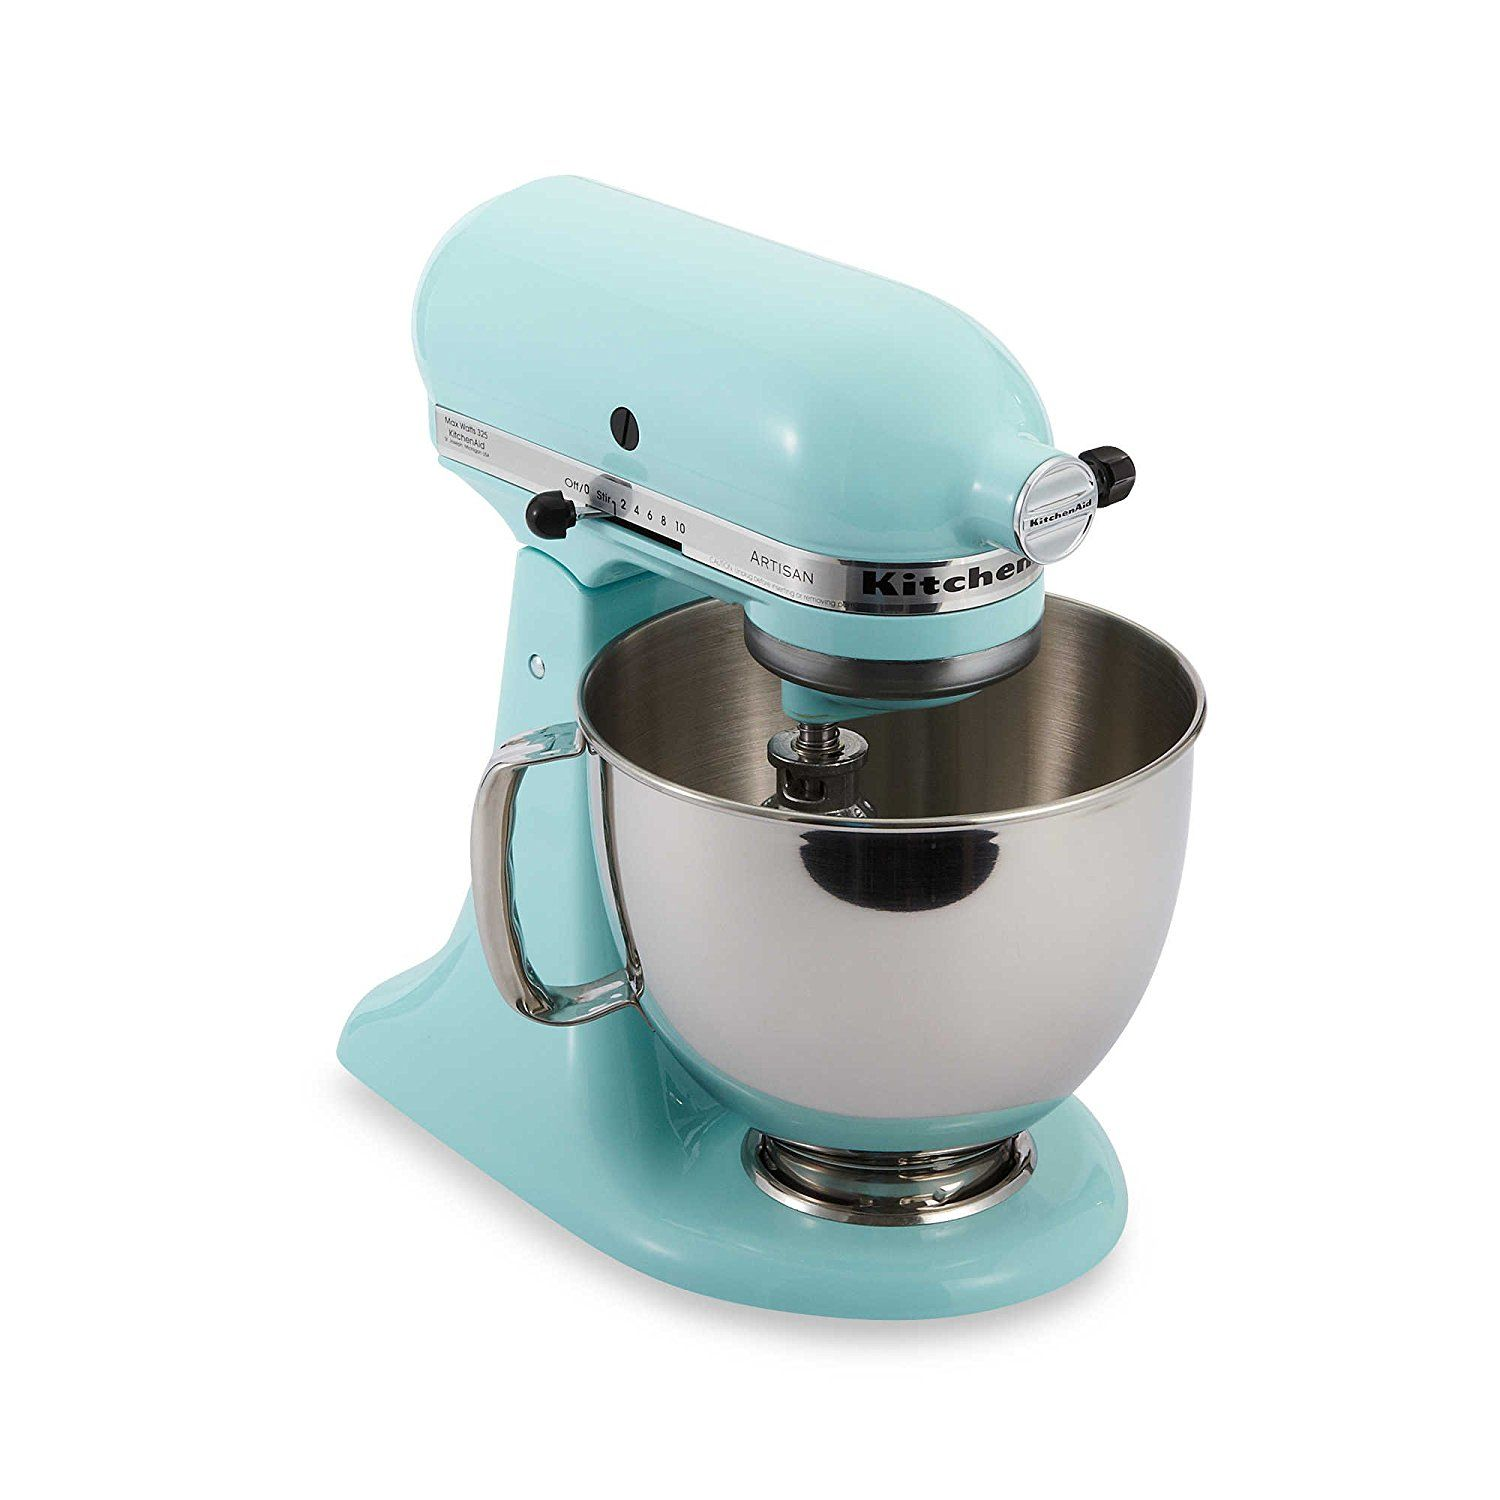 Cool Ice blue Artisan mixer from the artisan series of KitchenAid ...